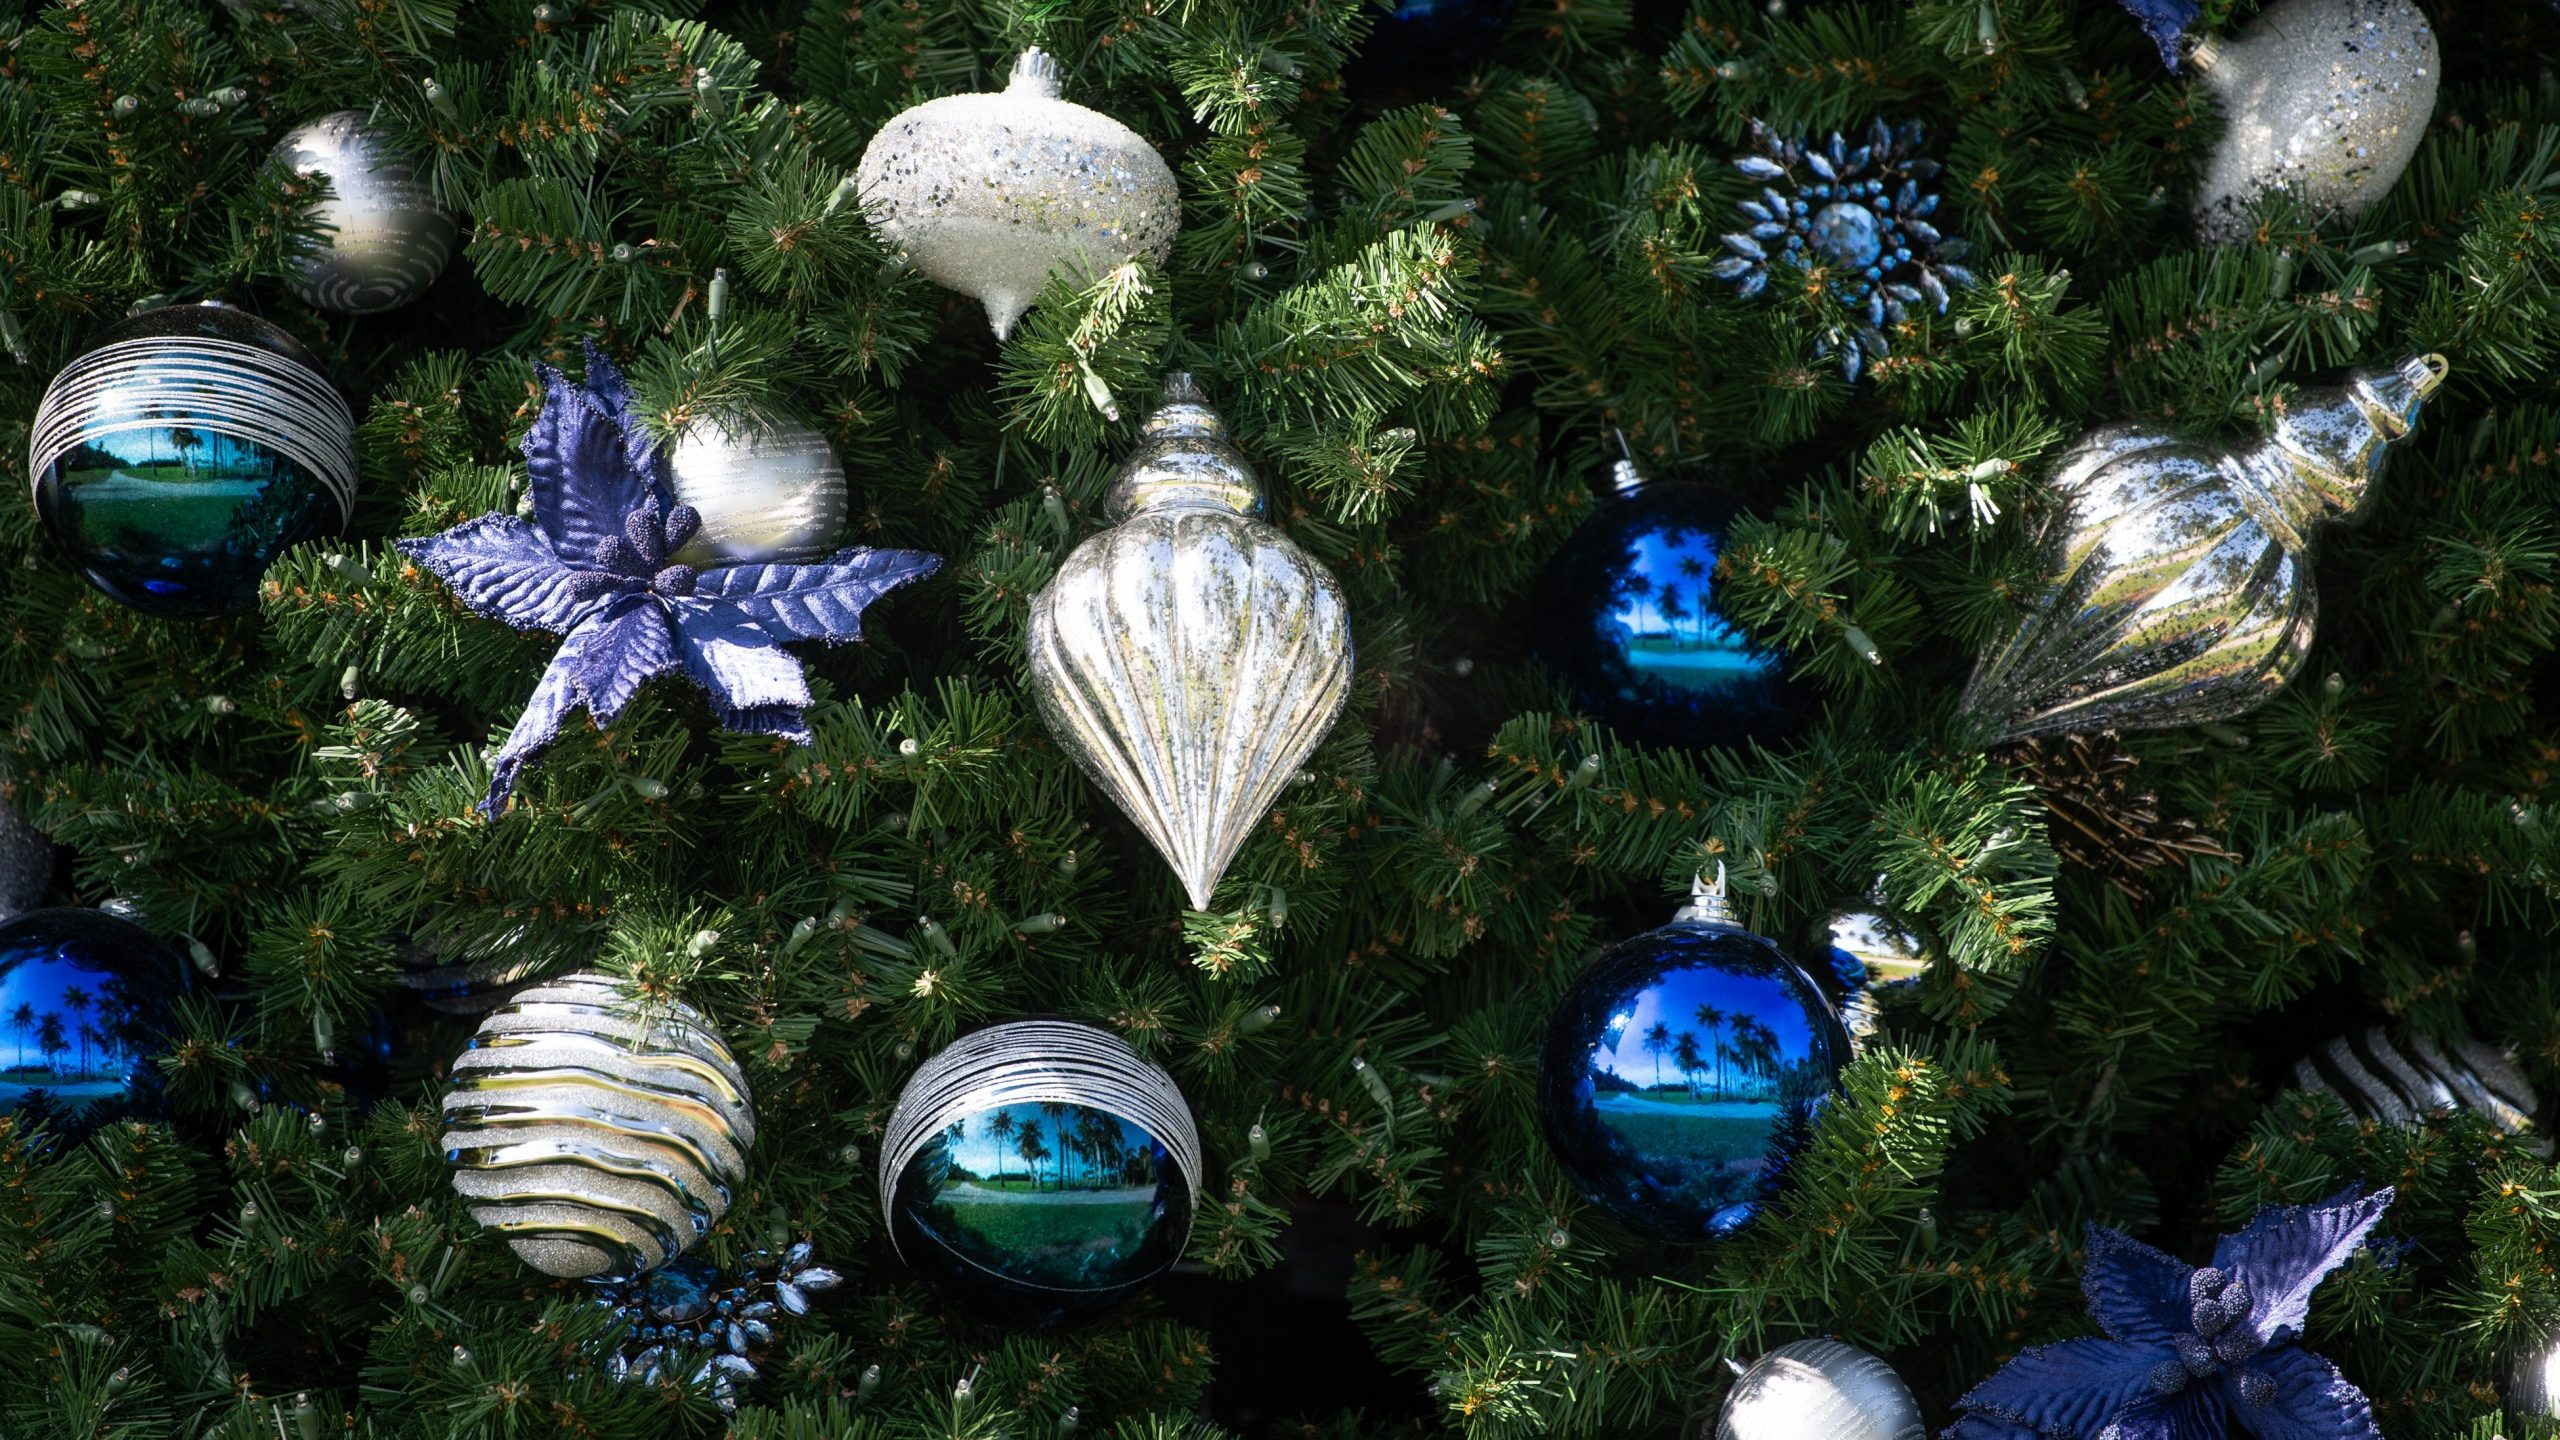 small festive ornaments covering a Christmas tree